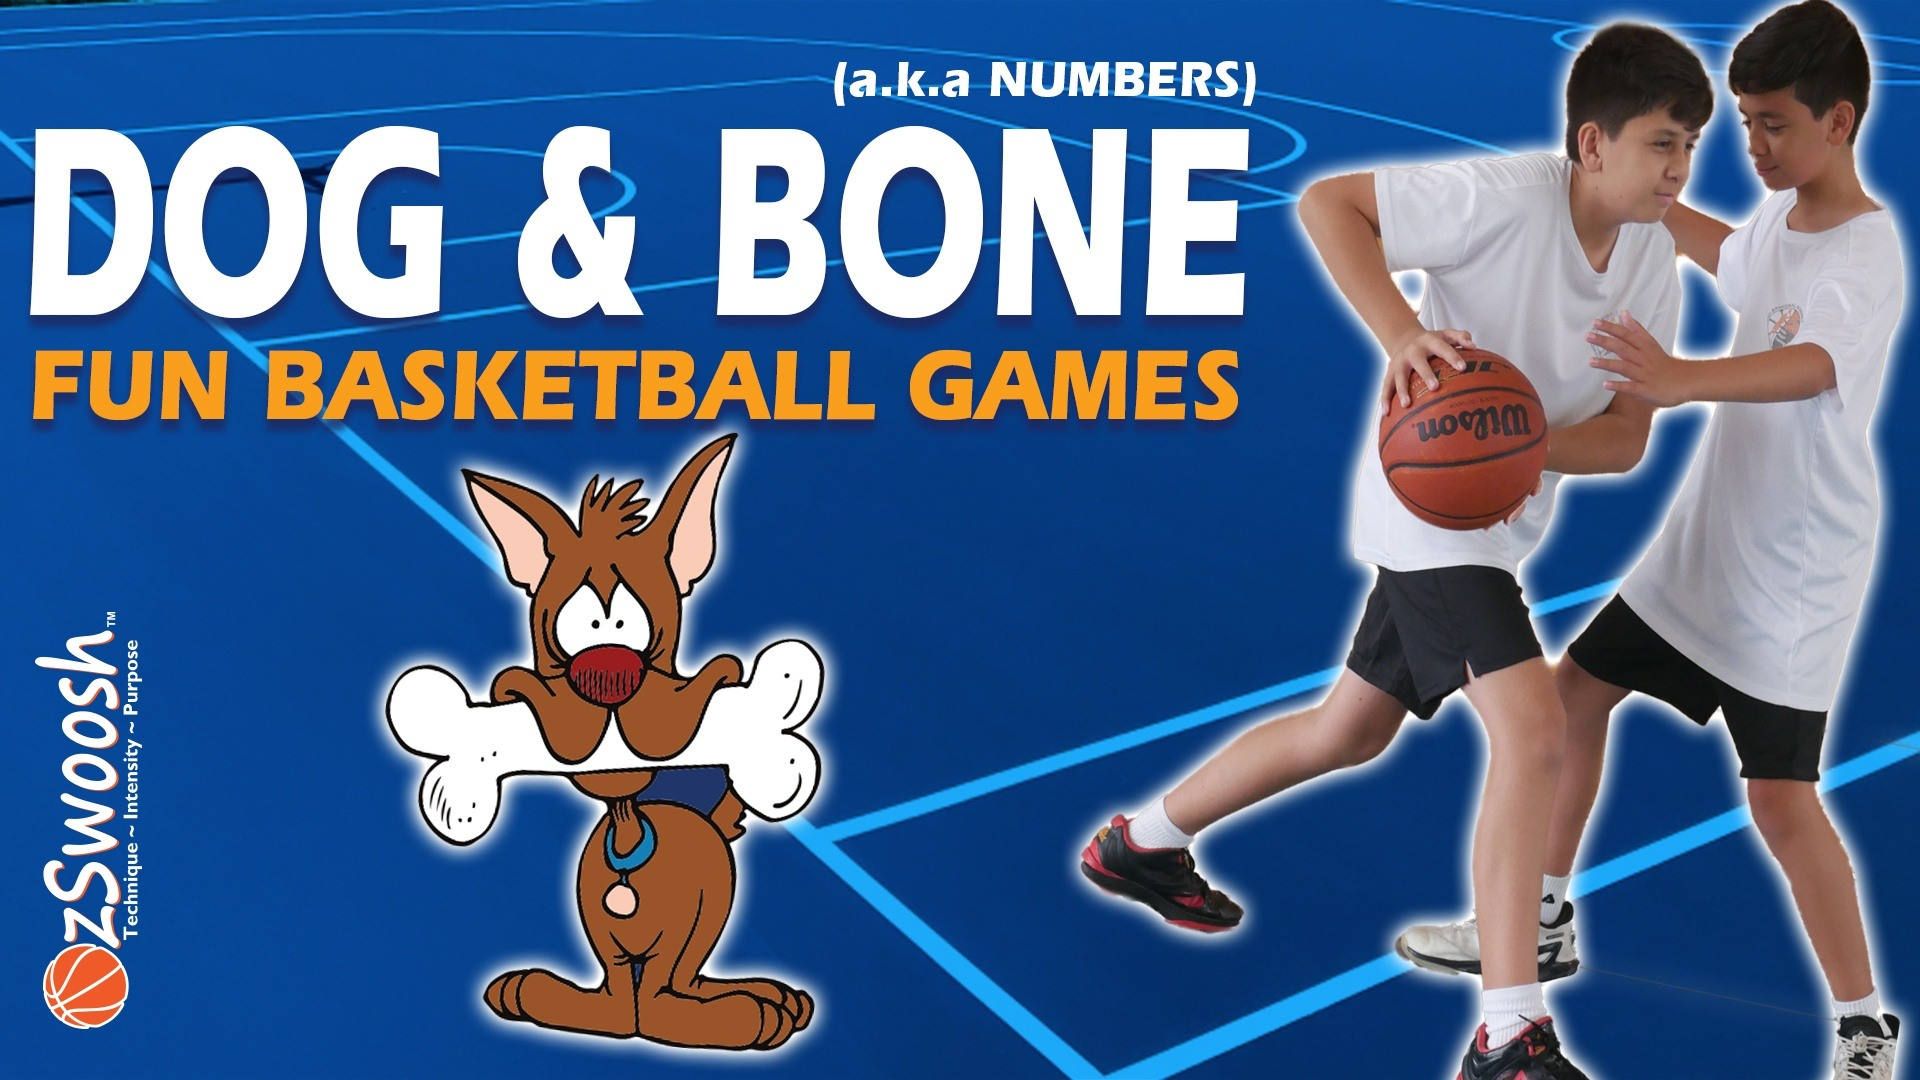 Fun Youth Basketball Drills For Kids - Dog and Bone (1 on 1 Game)